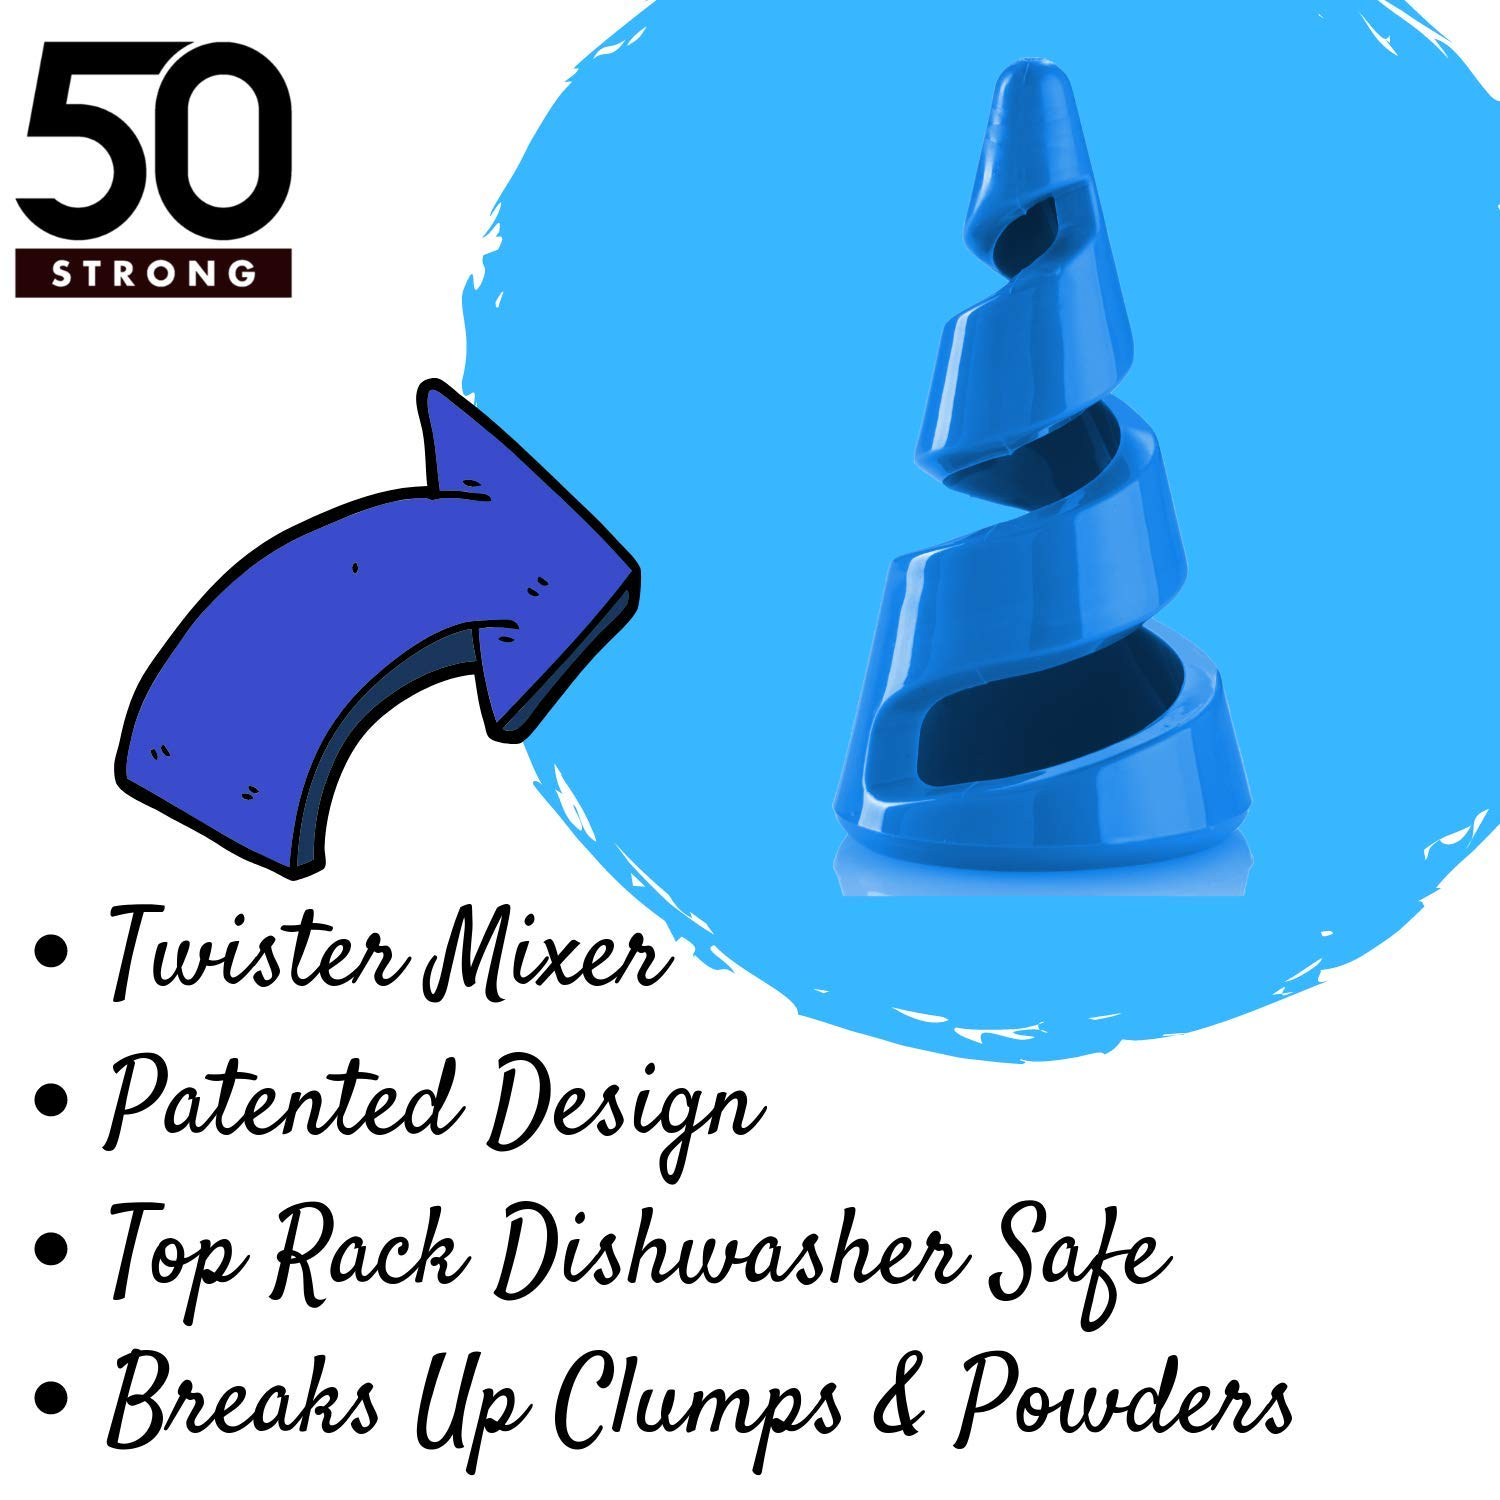 BPA Free Bottles with 360 Degree Premium Prints Stain /& Odor Resistant Shake Cup with Measurements 50 Strong Twister Mixer Tritan Protein Shaker Bottle 30 oz Made in USA